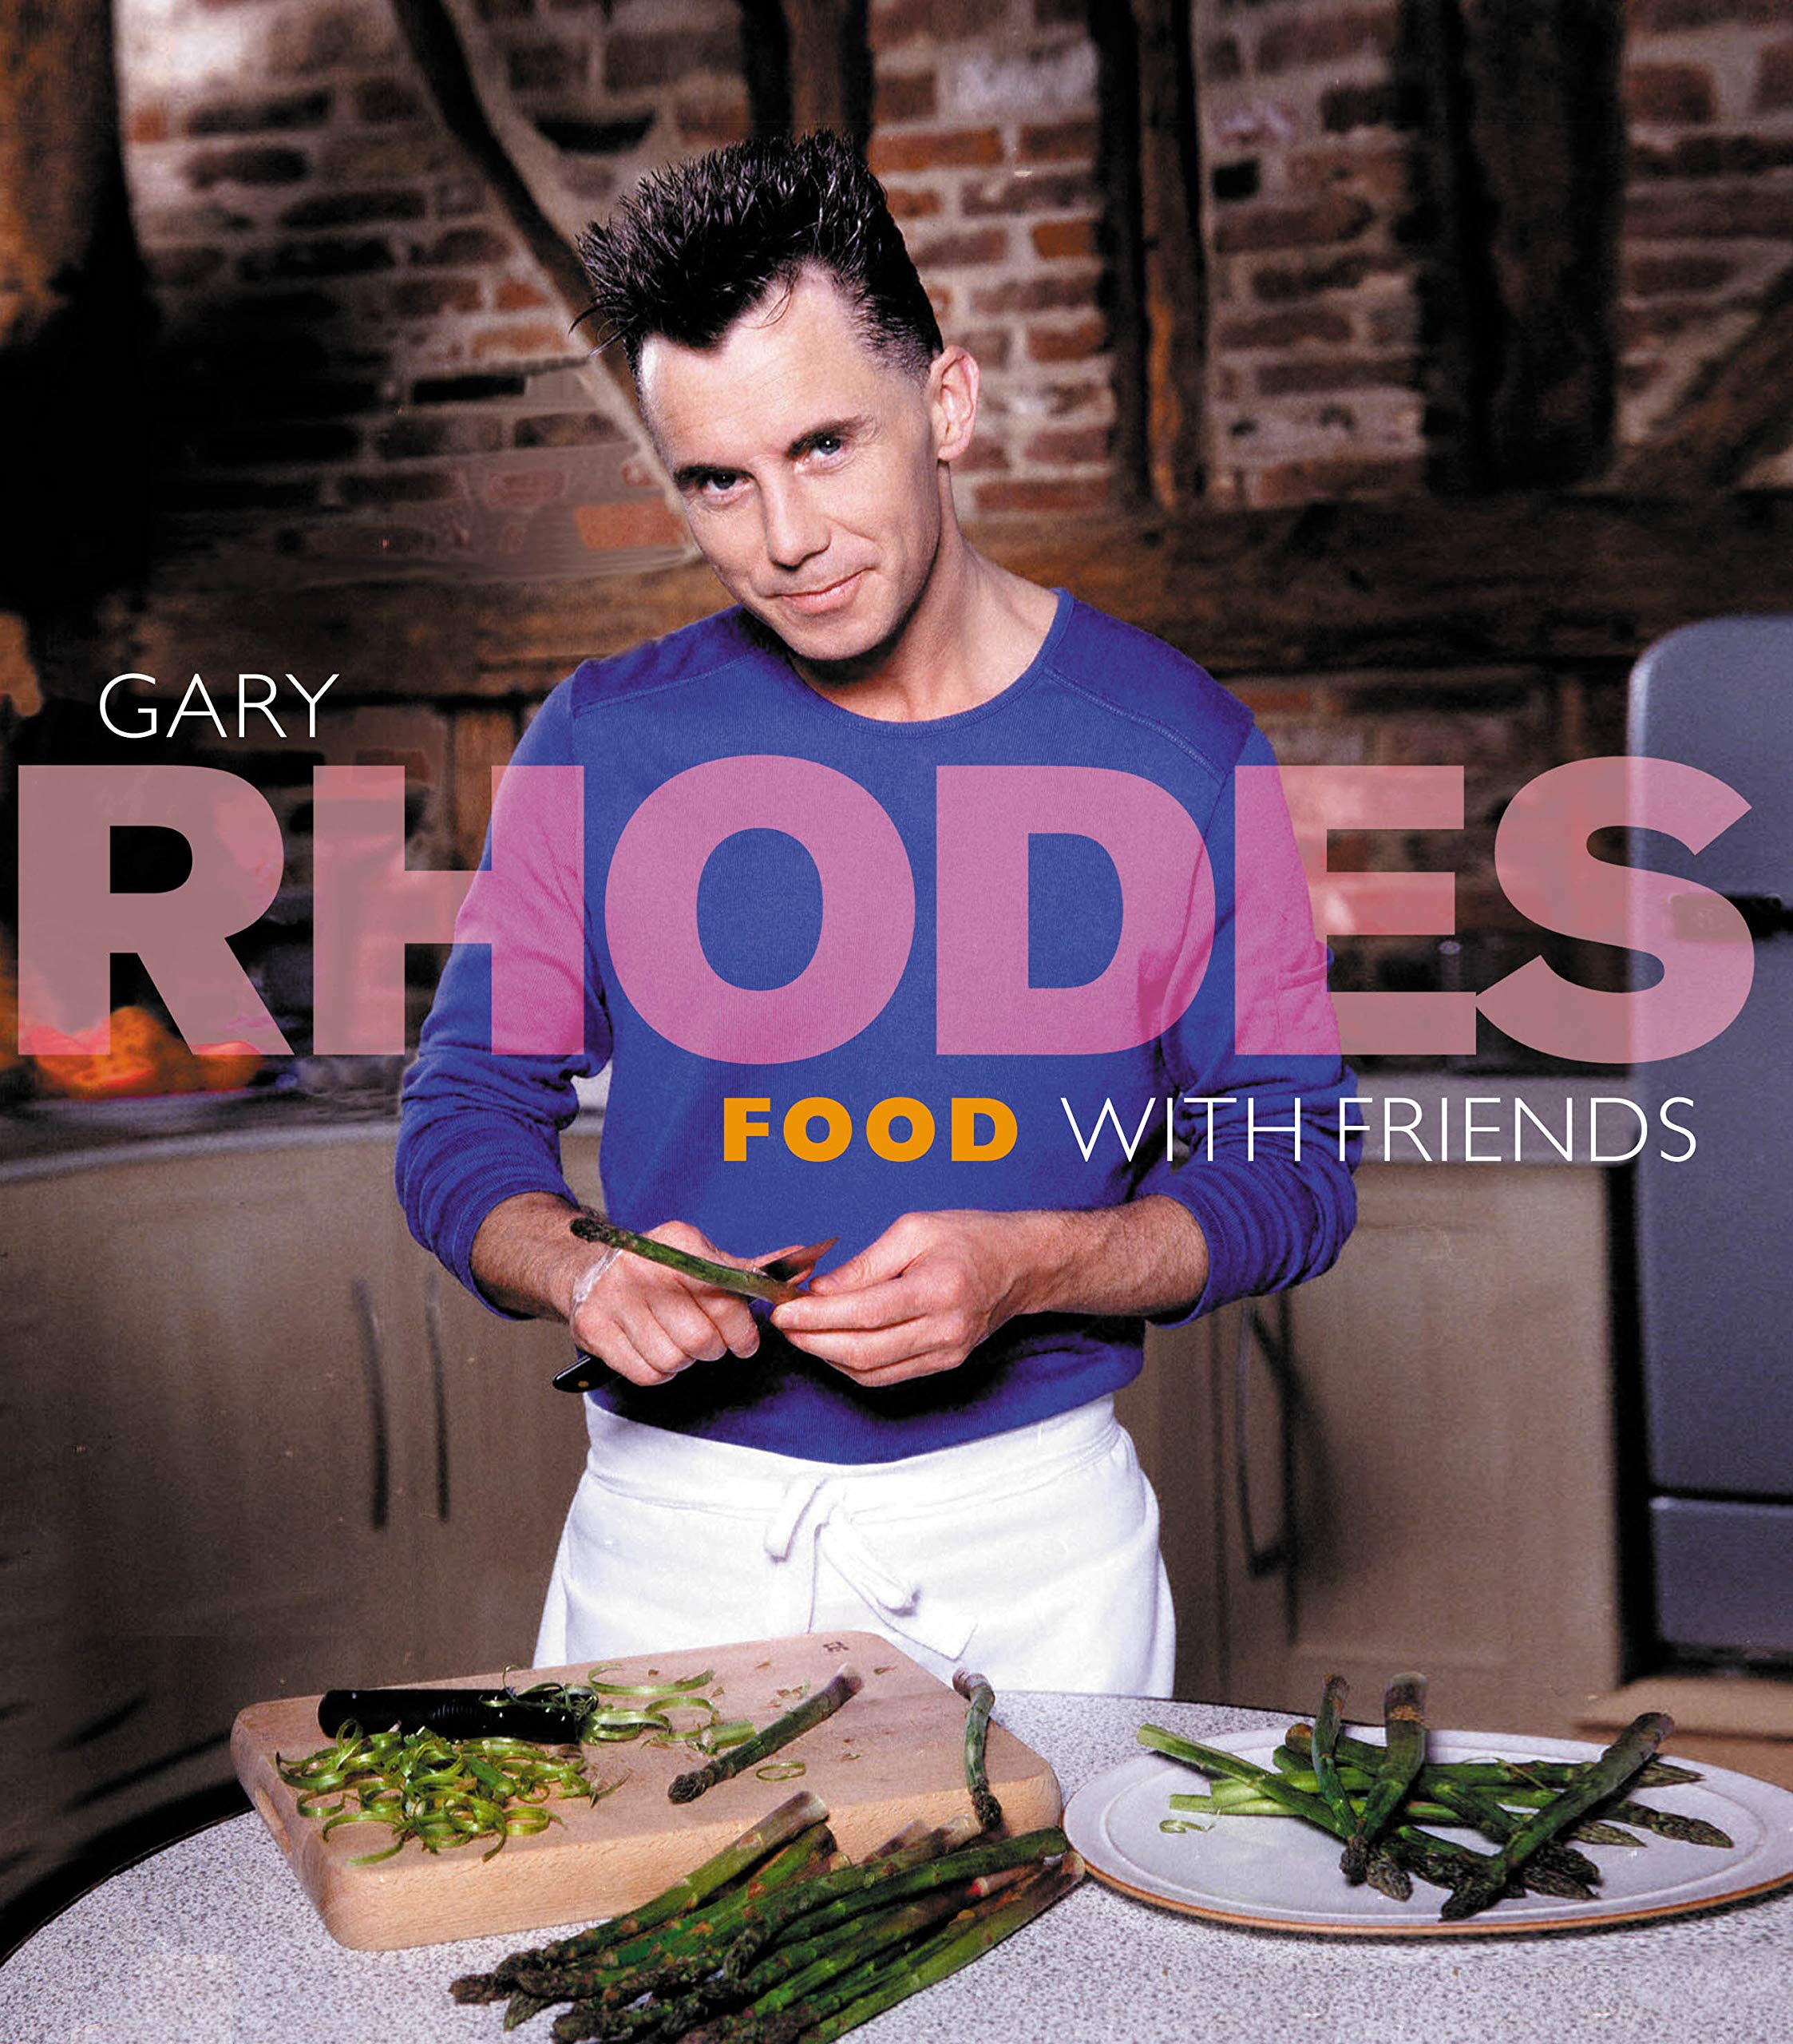 Food for Friends: Rhodes, Gary: 9780091886684: Amazon.com: Books